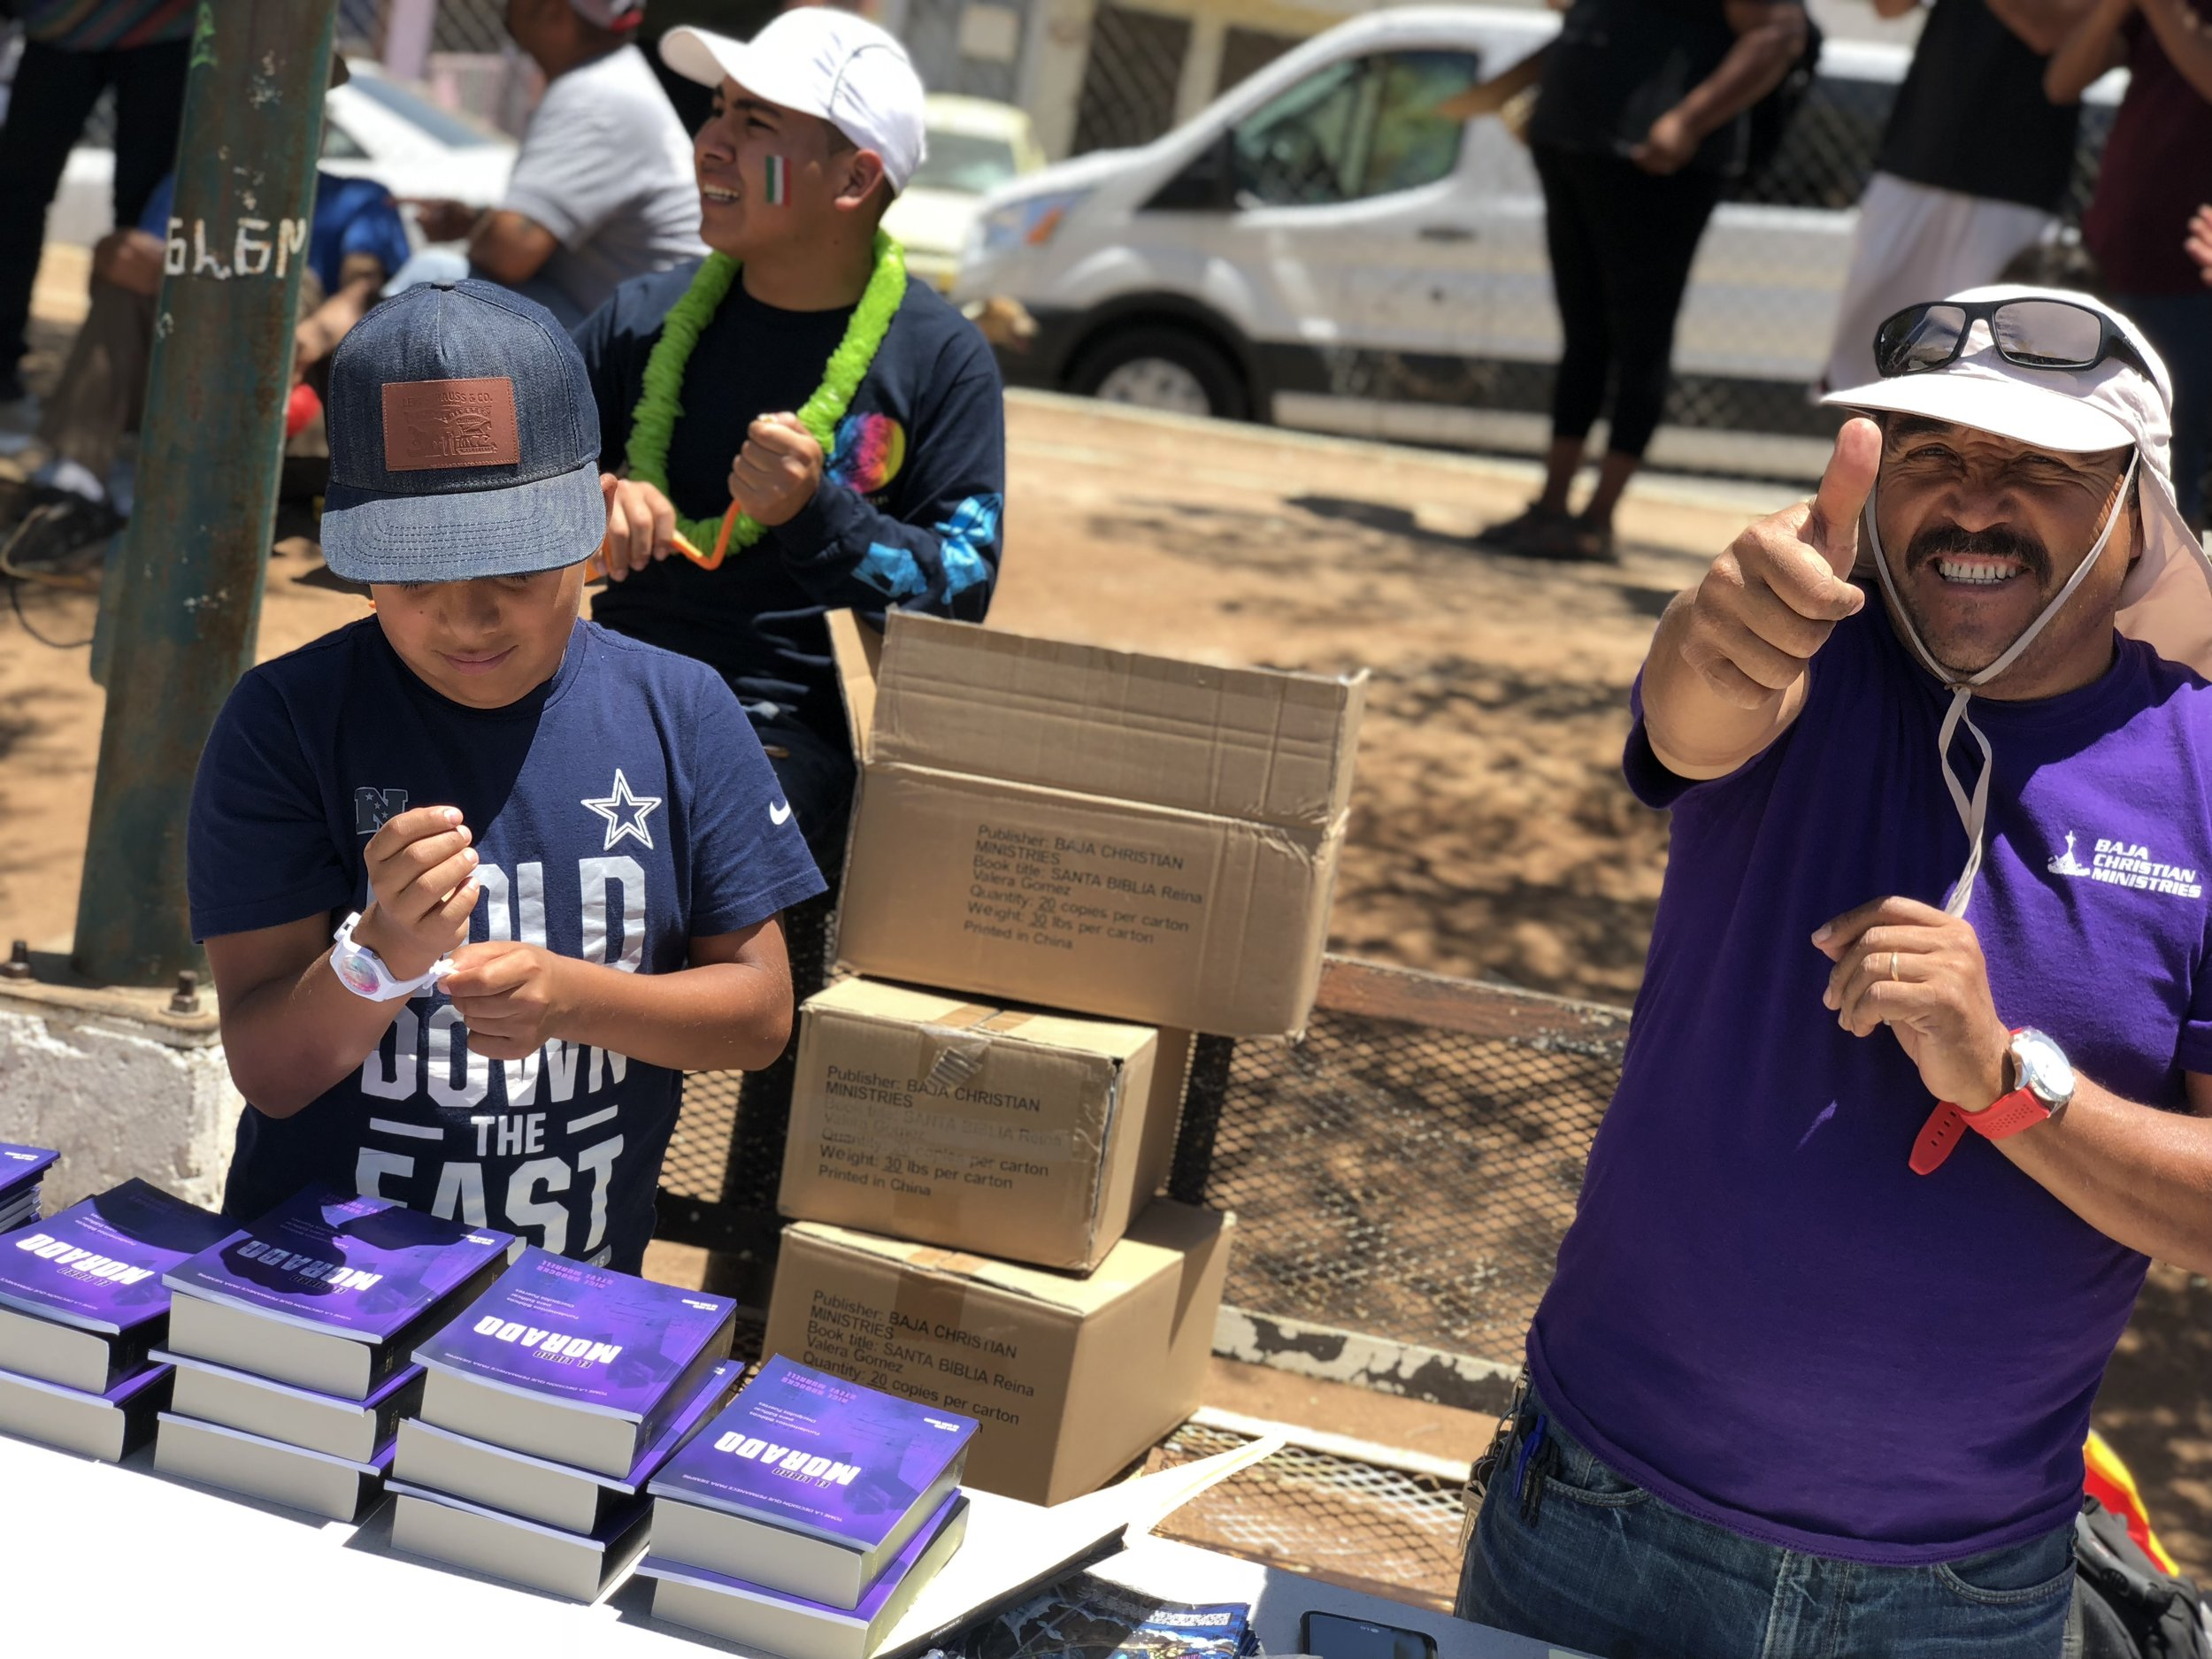 On a much more important note, we gave out purple books and Bibles to people who haven't yet received them this week! The purple book is an awesome discipleship book that helps believers to strengthen their faith and knowledge. As you can see, we had a great time today. The fiesta was so much fun for us and for the village people, and we shared the gospel with so many new people! Thank you again everyone for the comments and support! We love and miss you guys!